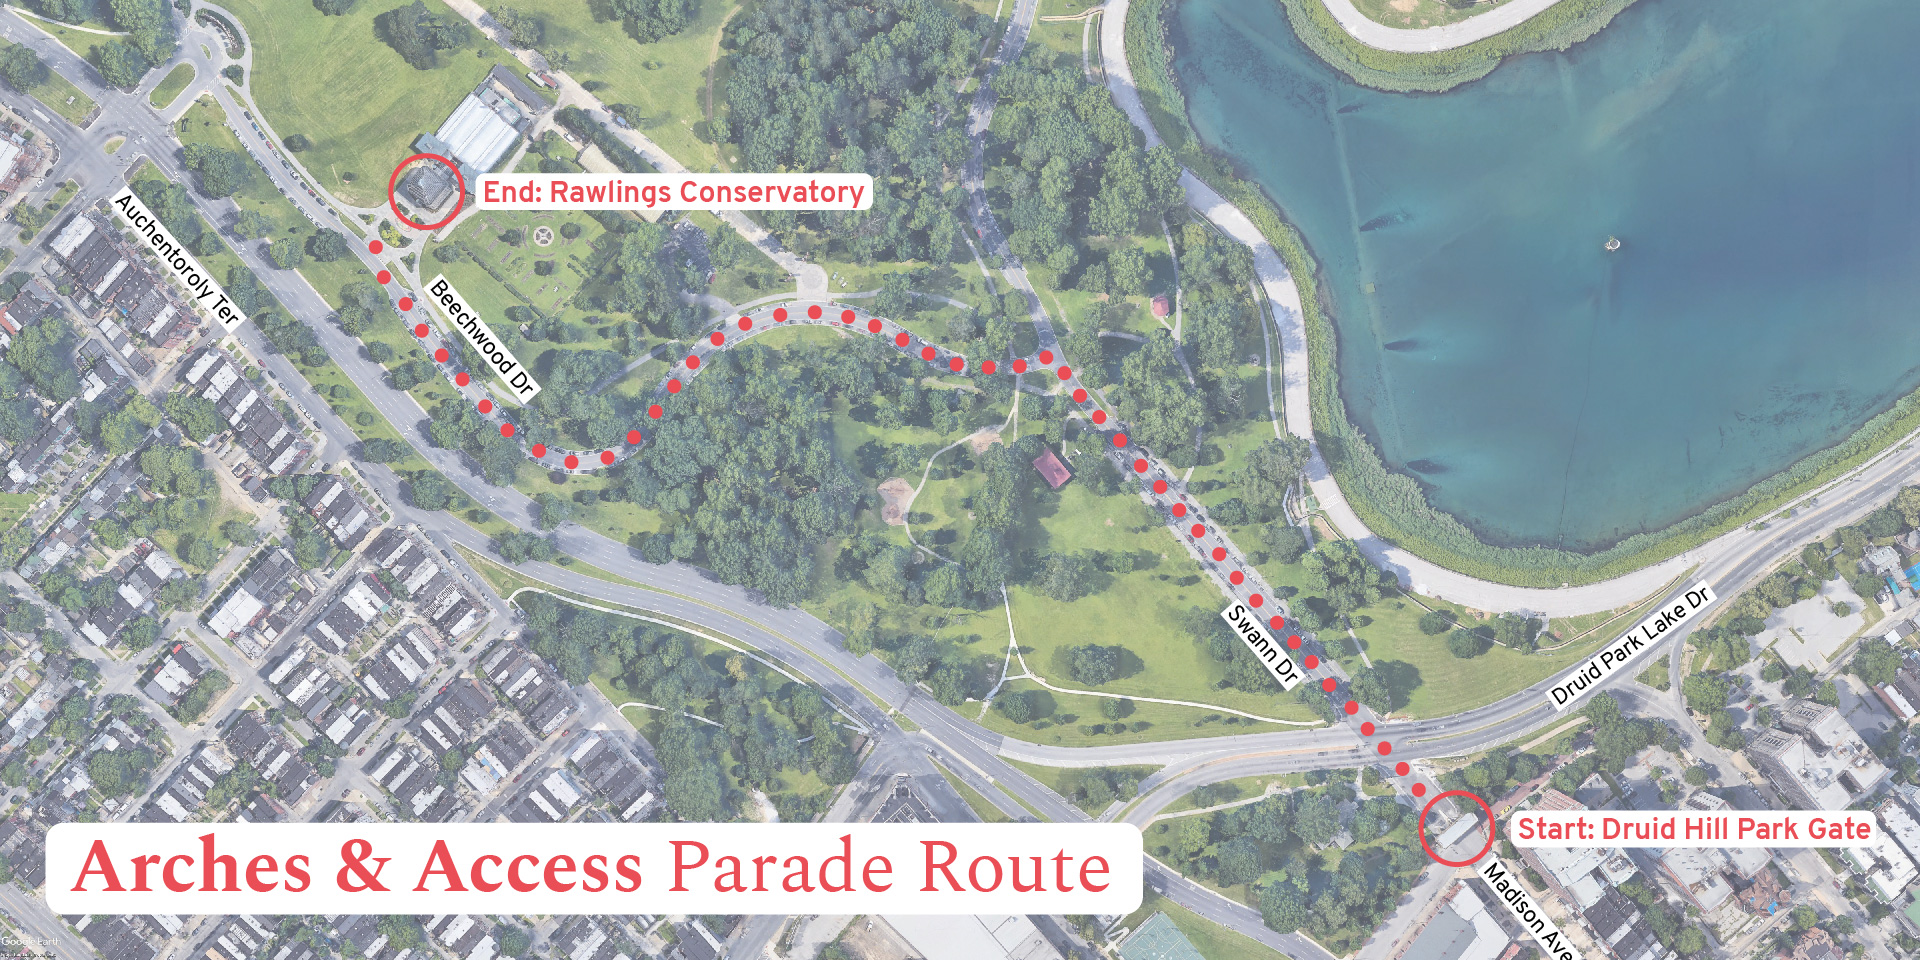 Arches & Access parade route